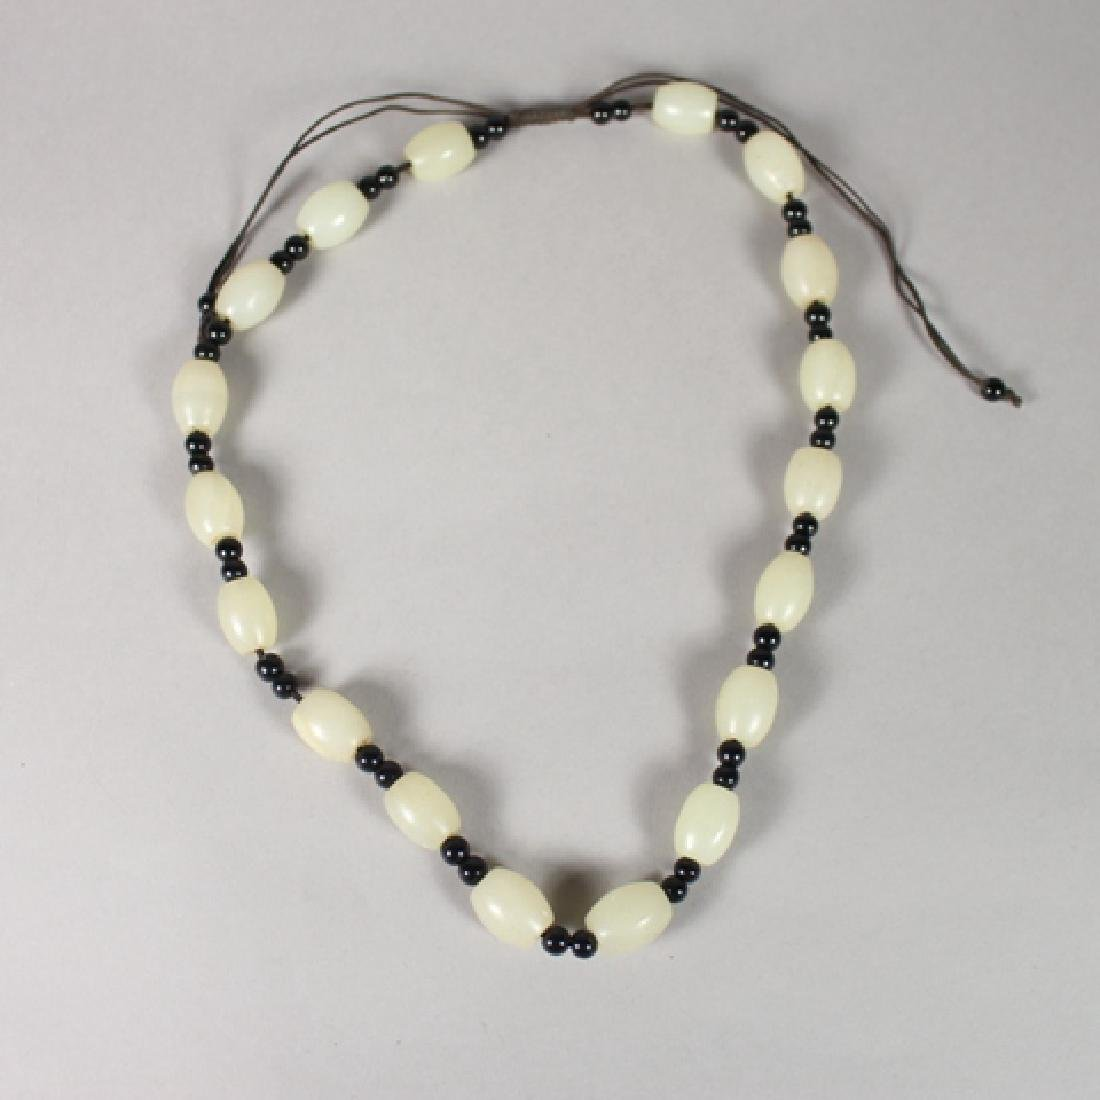 White Jade Beaded Necklaces with Figural Pendants - 4